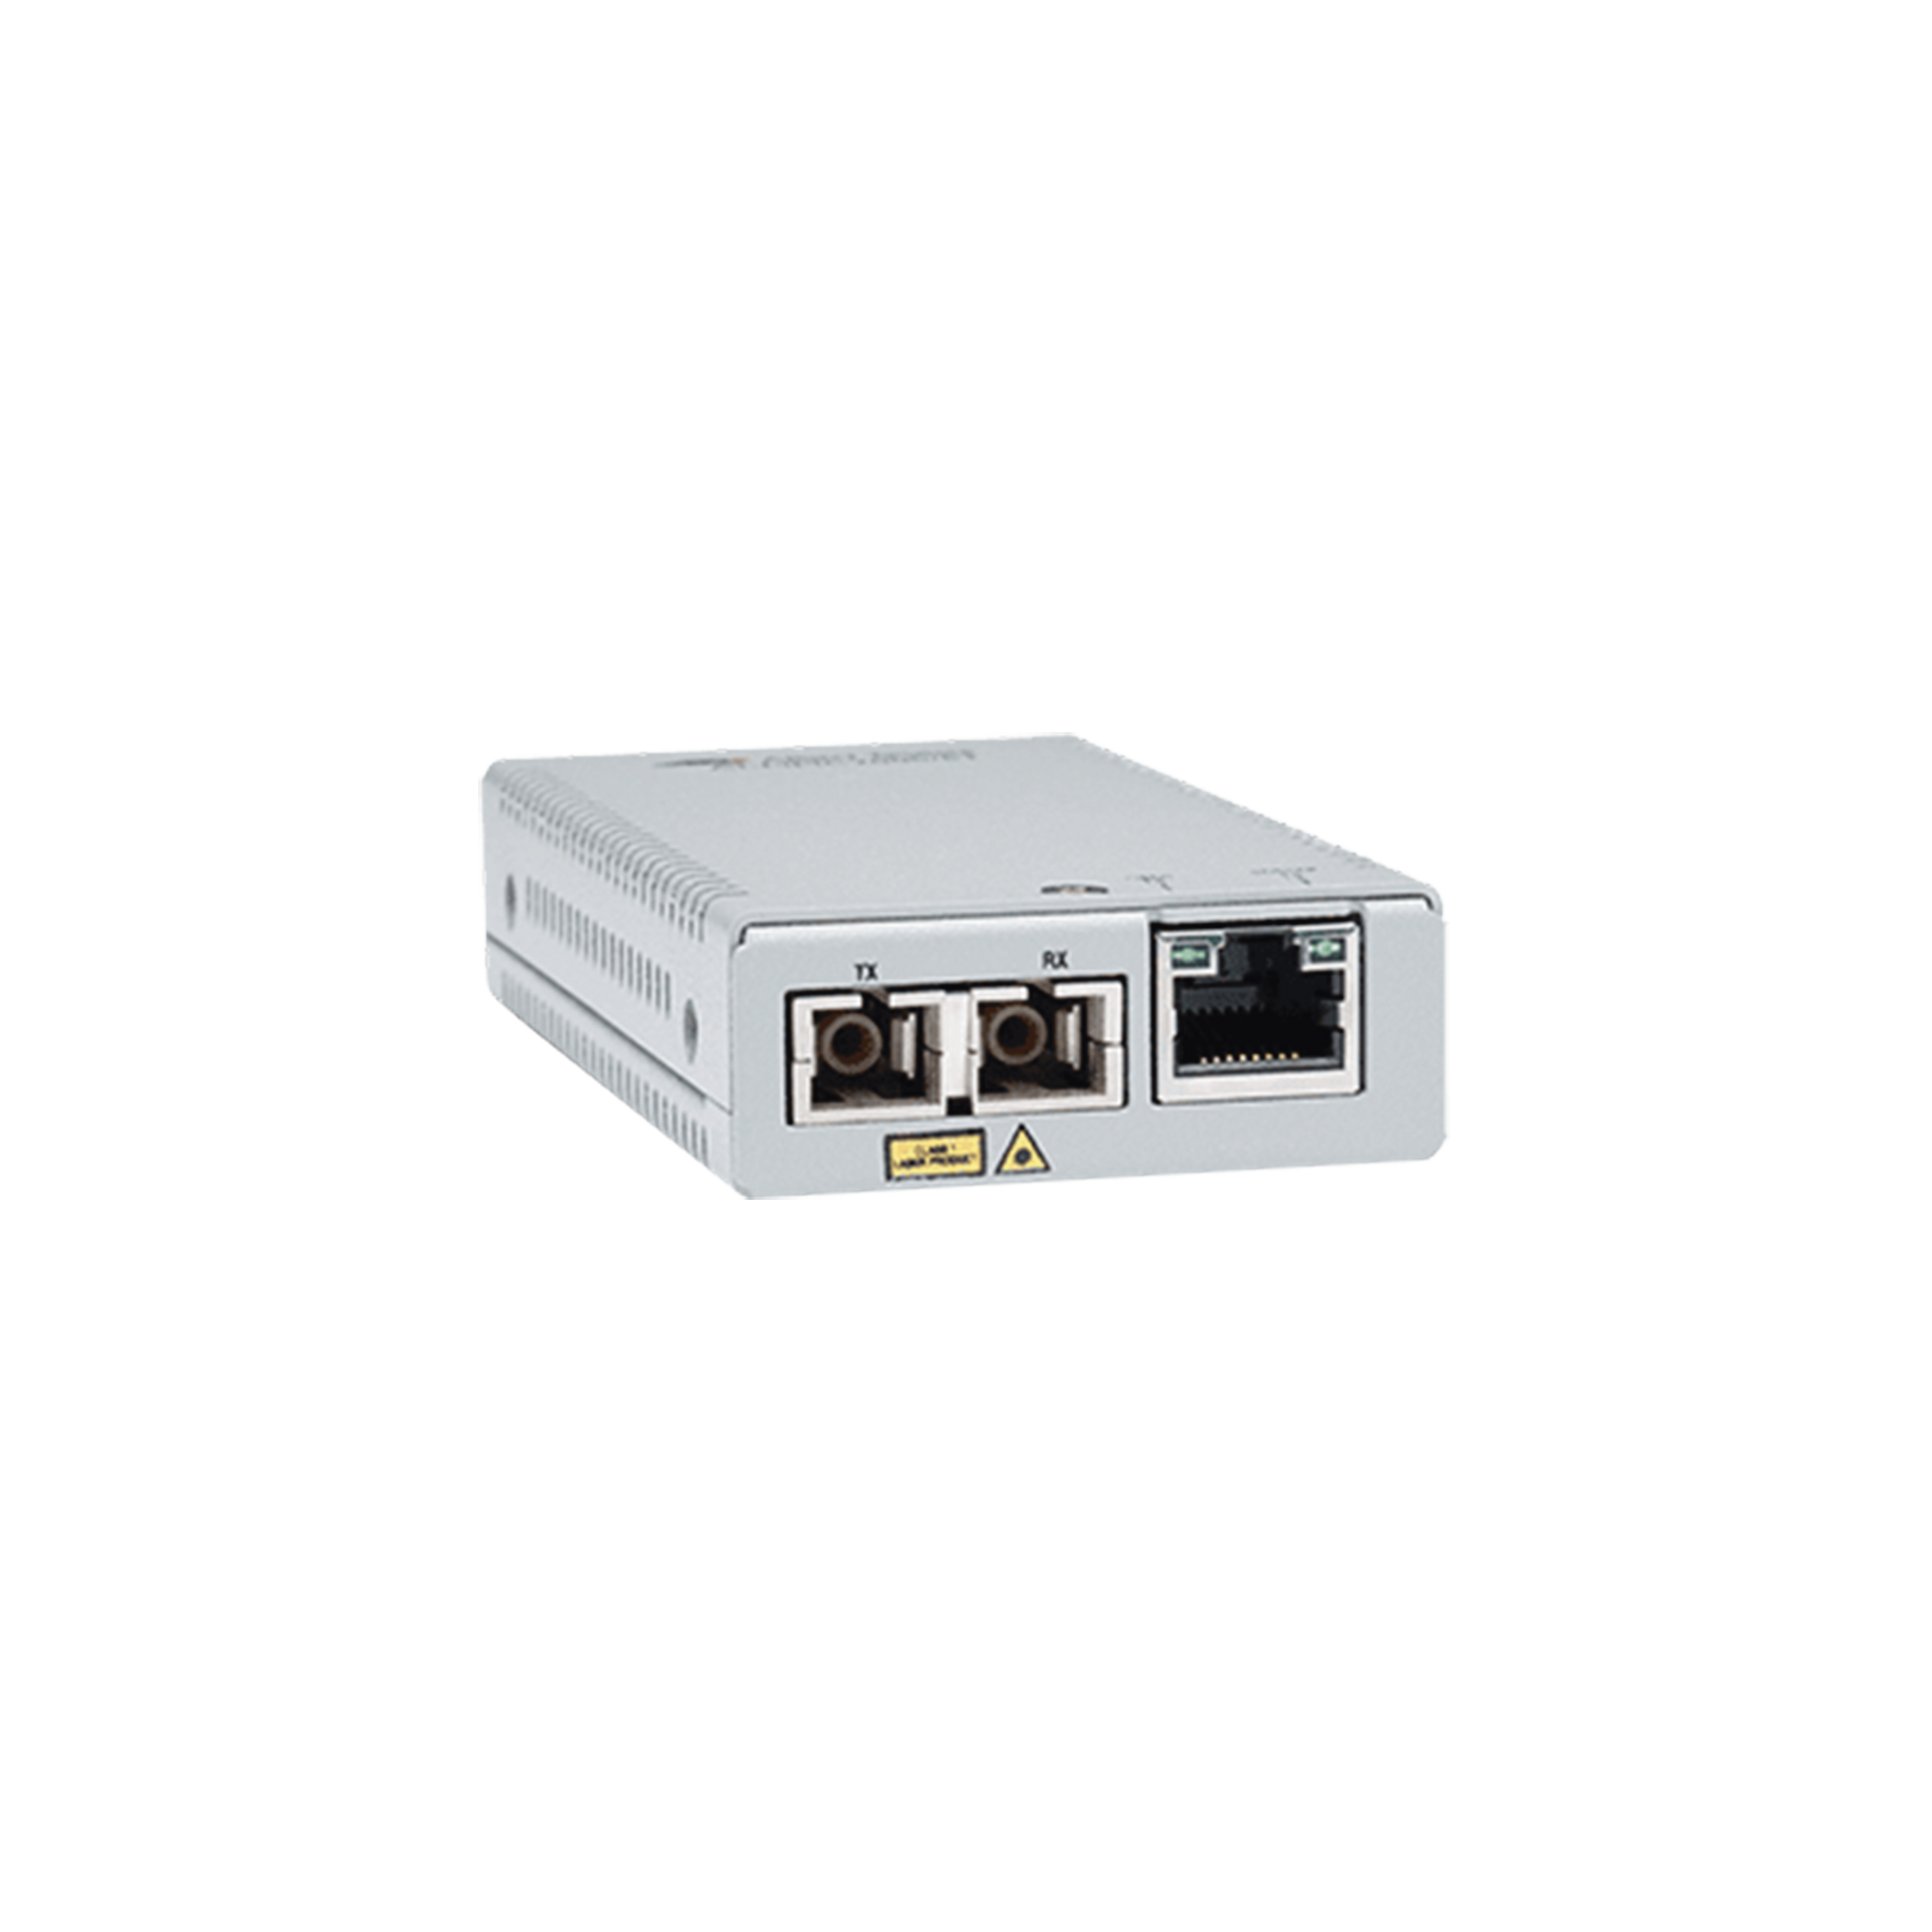 Convertidor de medios gigabit ethernet a fibra optica, conector SC, monomodo (SMF), version TAA (Trade Agreement Act), 10 Km